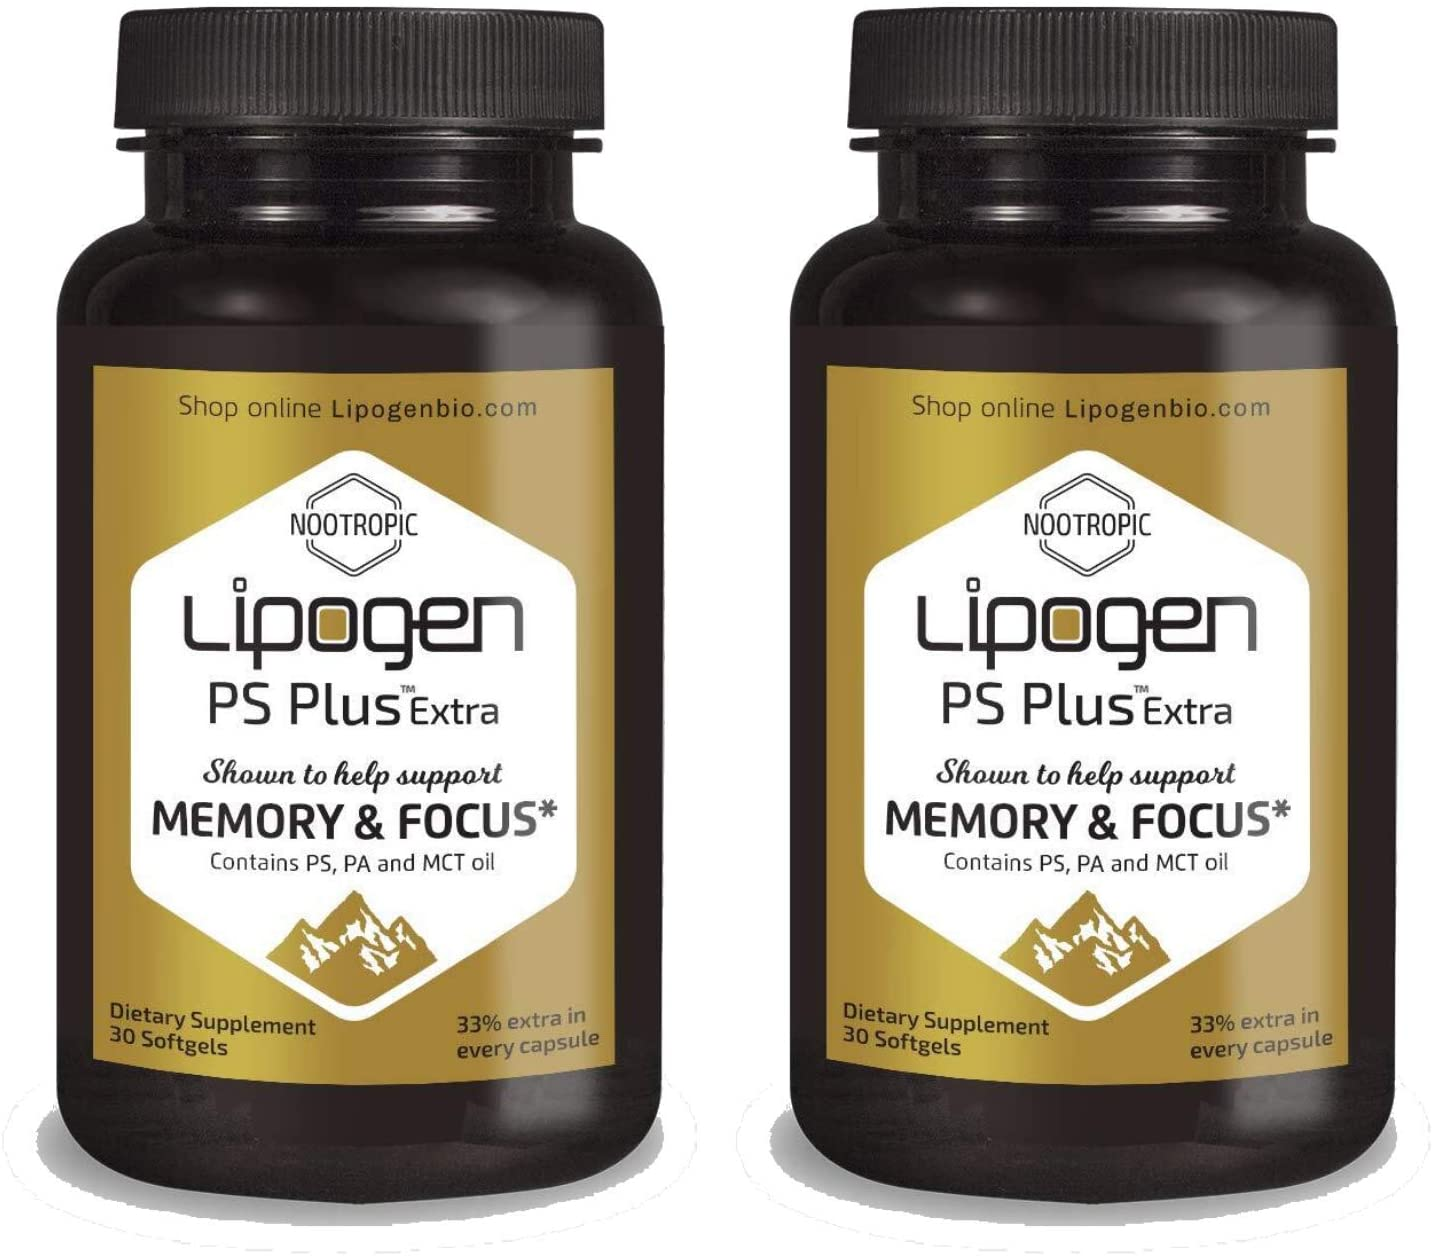 Lipogen PS Plus Extra Focus and Memory Brain Booster Supplement, Clinically Proven Formula, Extra 33% in Every Softgel (2 Pack)